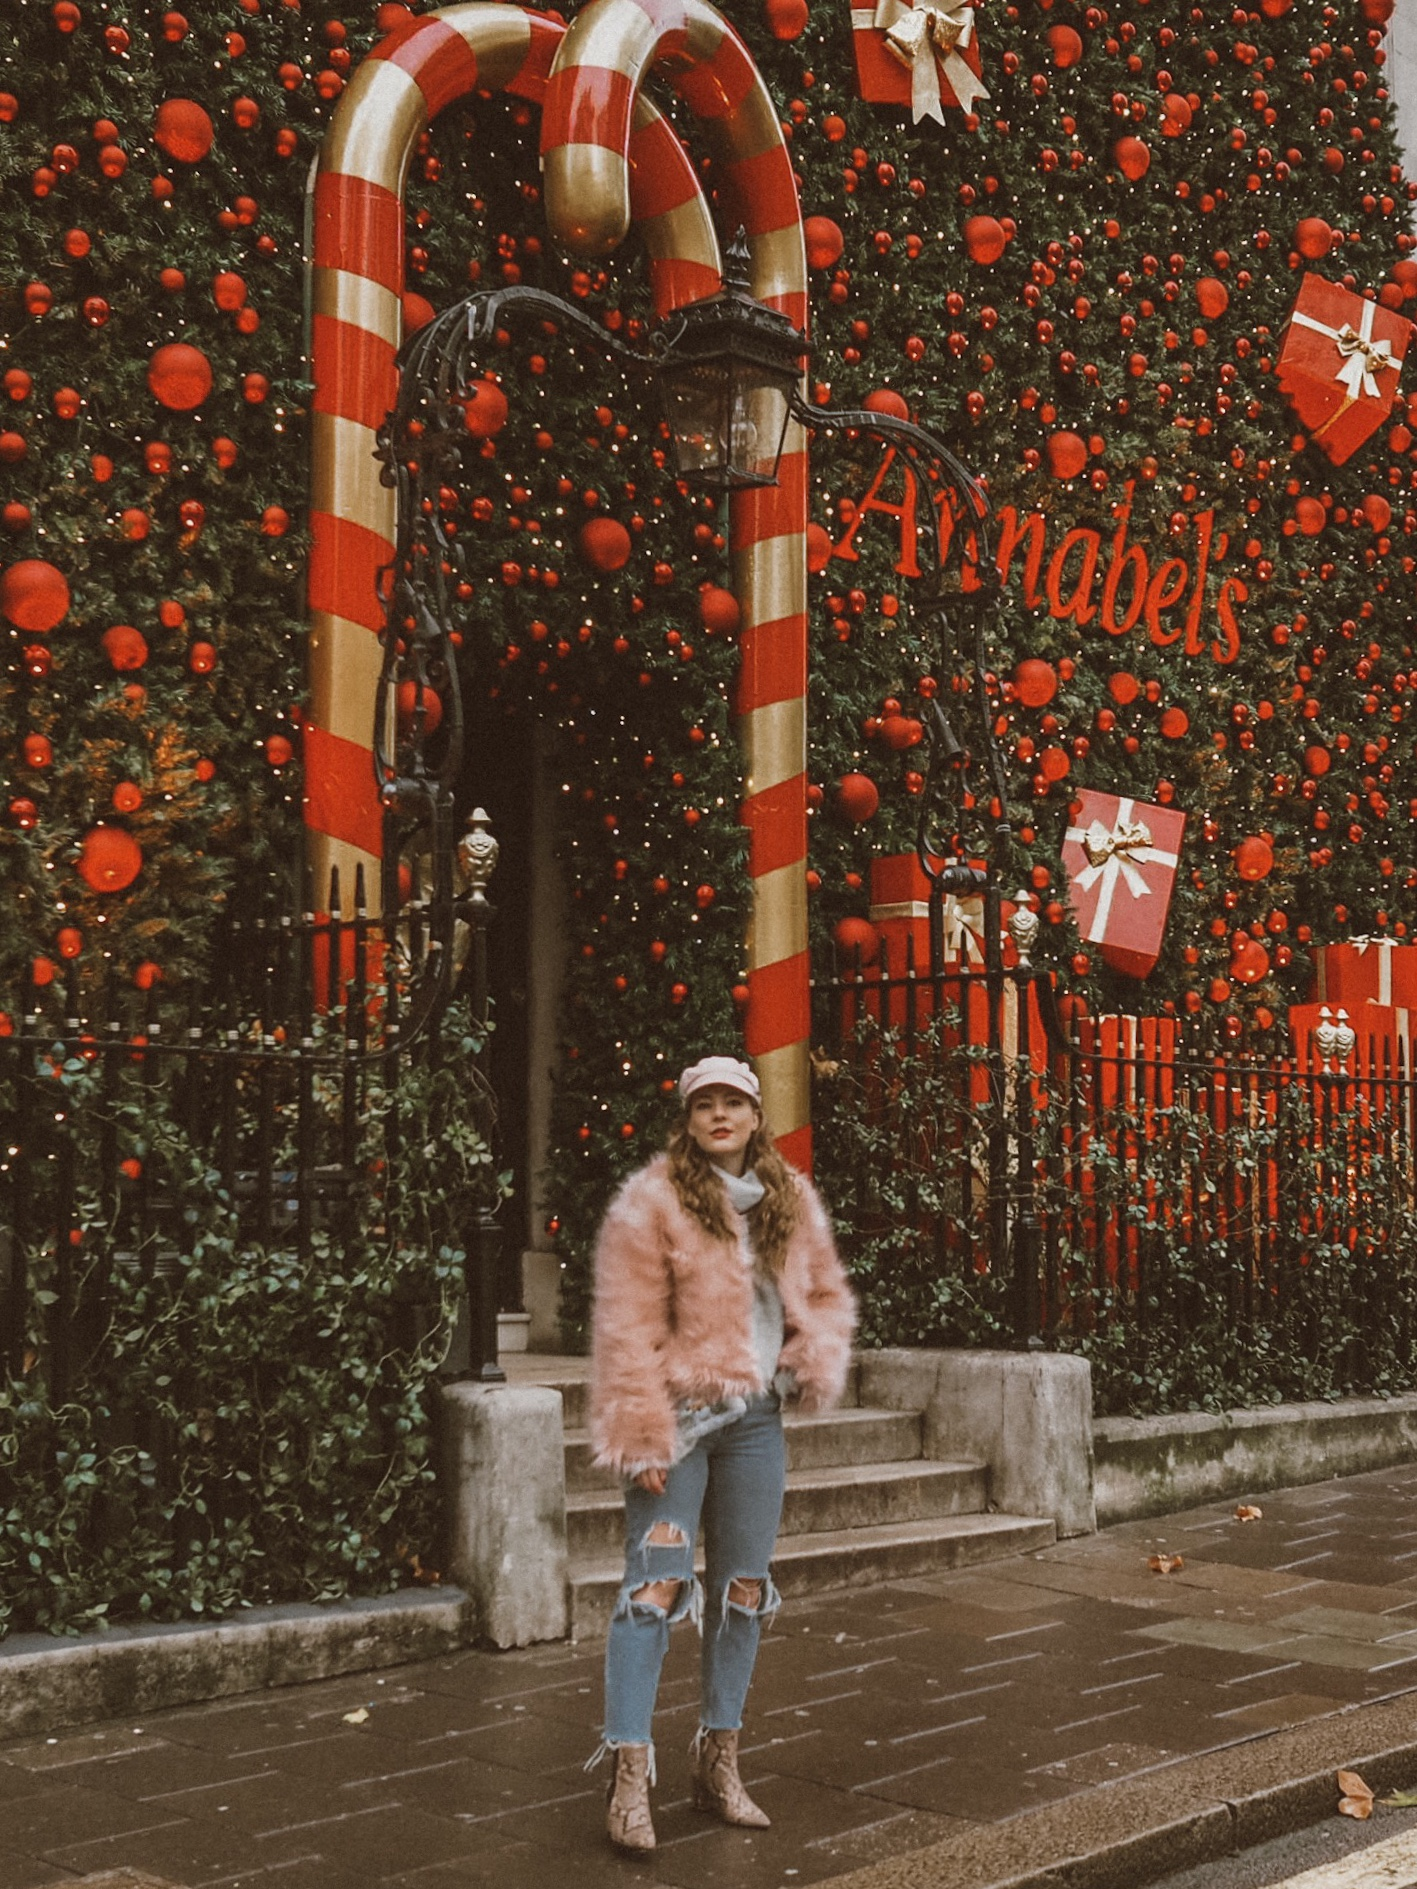 London's Best Christmas locations for your Instagram